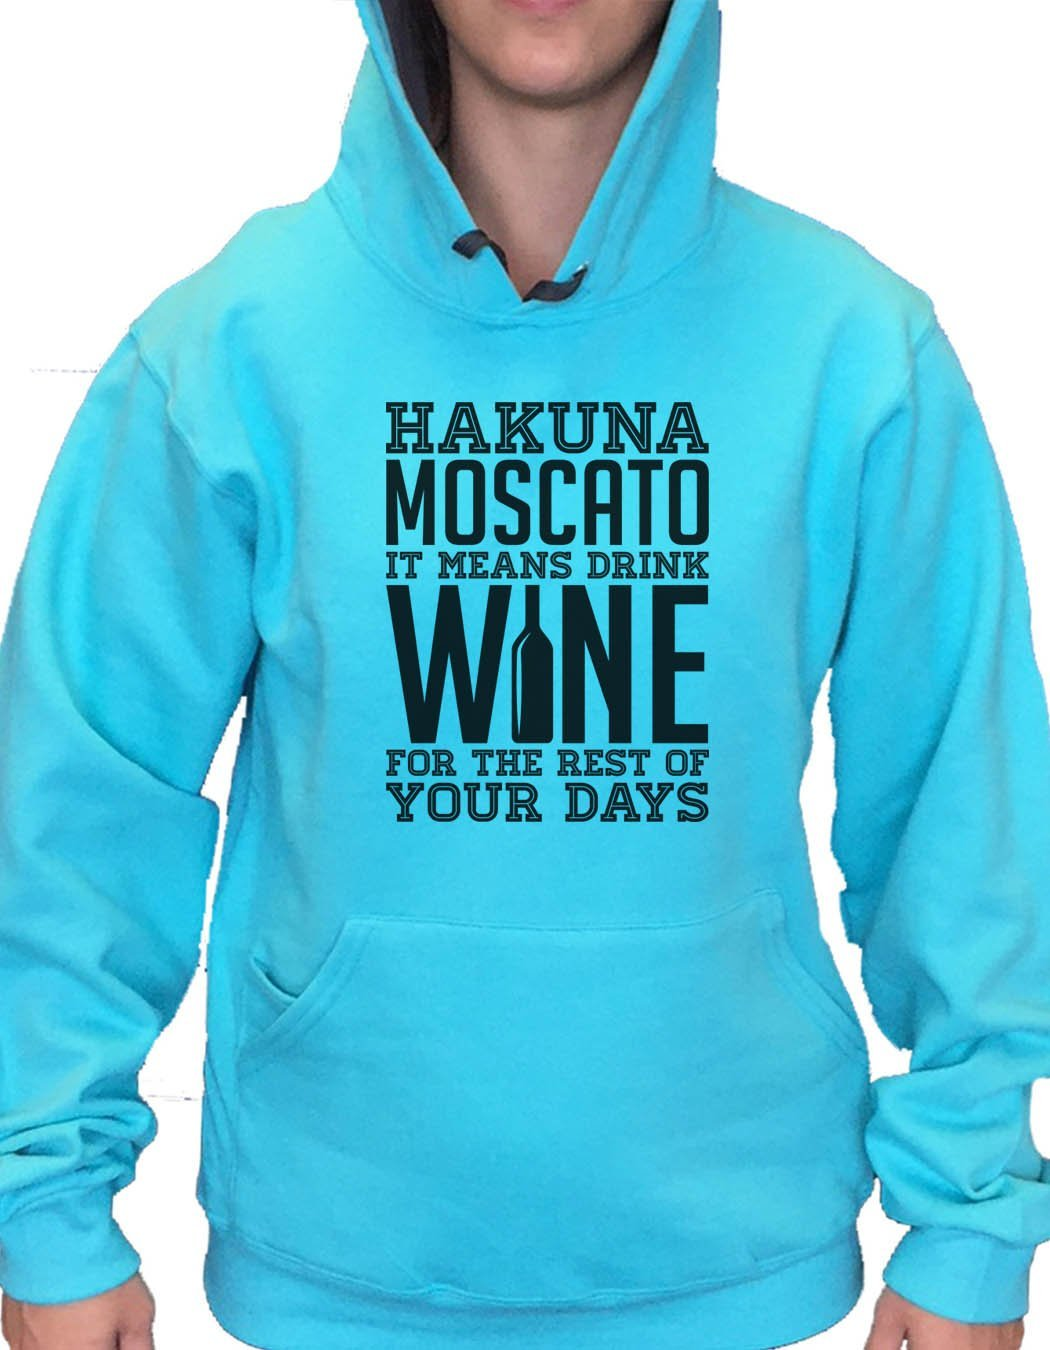 UNISEX HOODIE - Hakuna Moscato It Means Drink Wine For The Rest Of Your Days - FUNNY MENS AND WOMENS HOODED SWEATSHIRTS - 2166 Funny Shirt Small / Turquoise